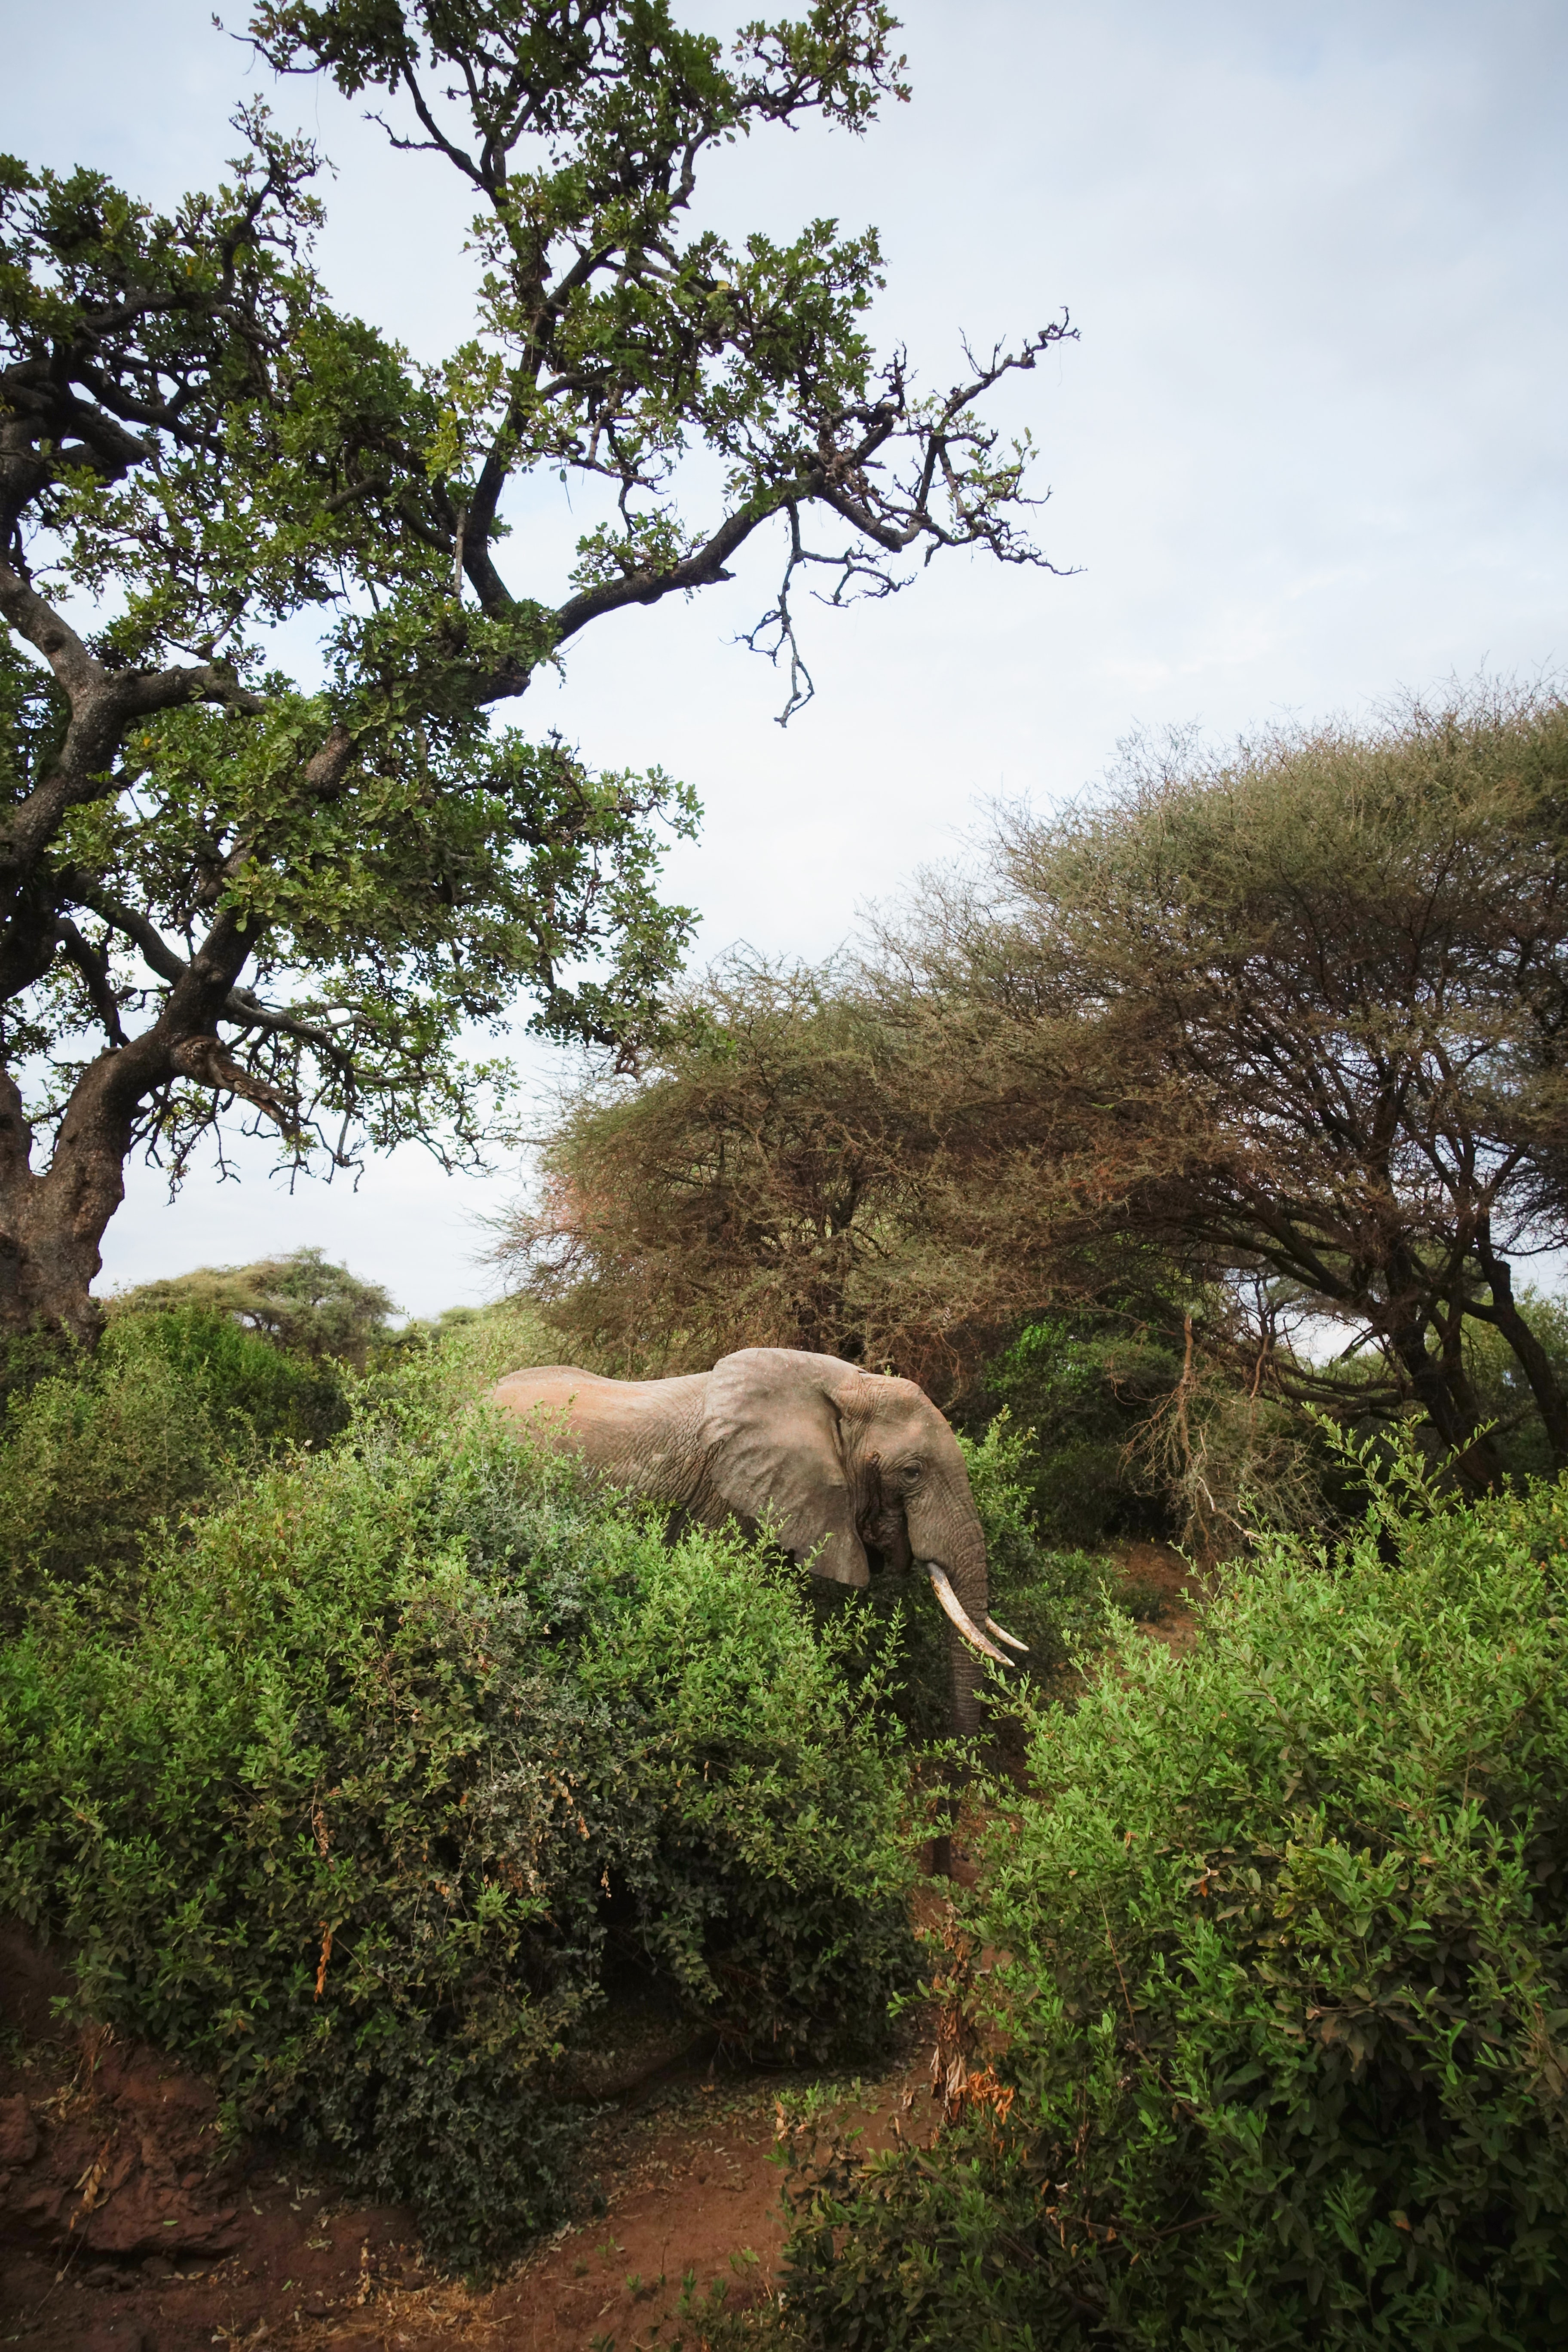 127973 download wallpaper Animals, Elephant, Animal, Trees, Wildlife, Bush screensavers and pictures for free